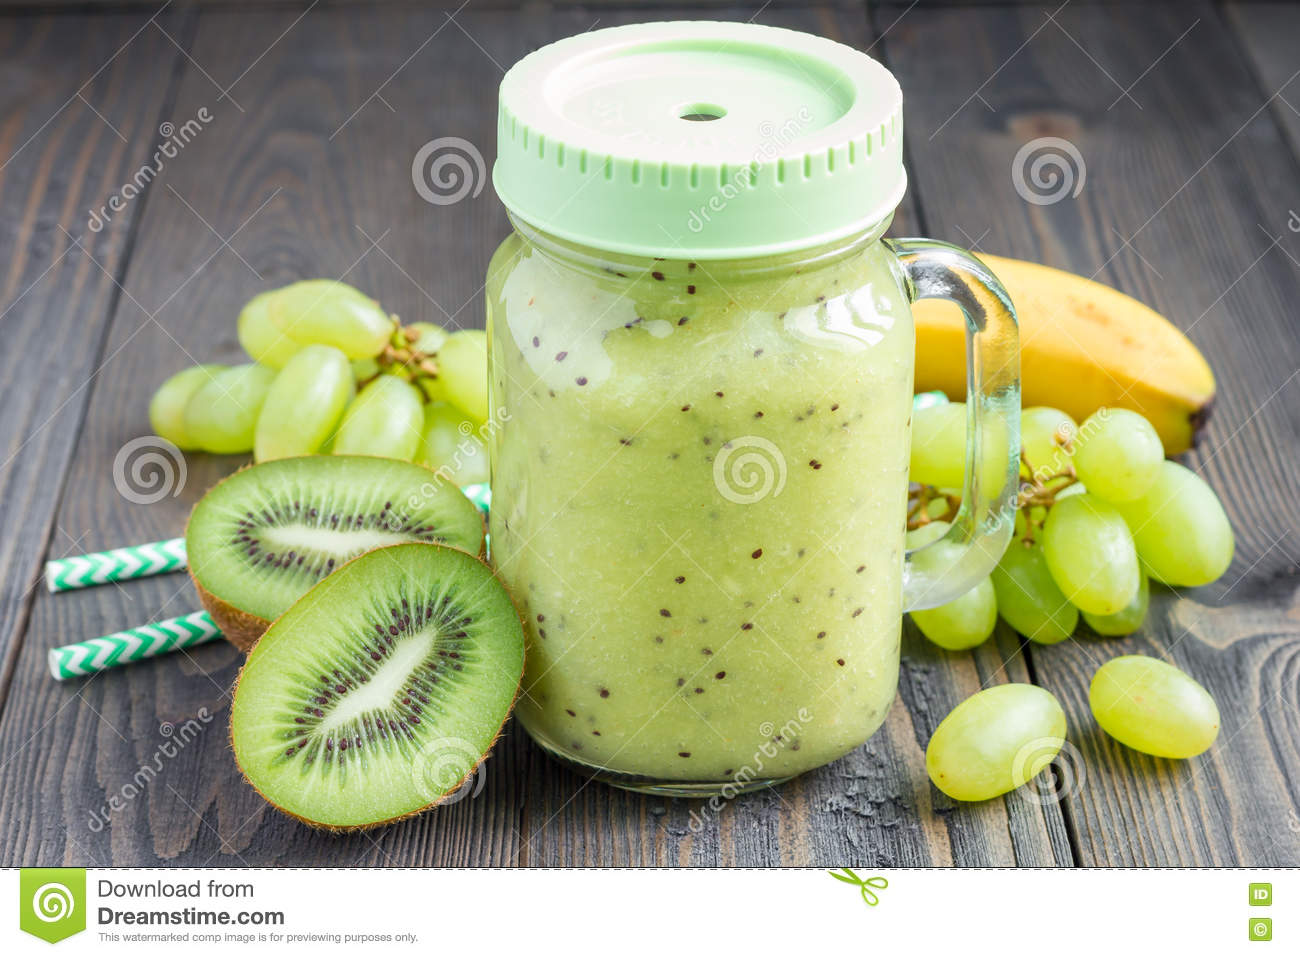 how to make a green grape smoothie